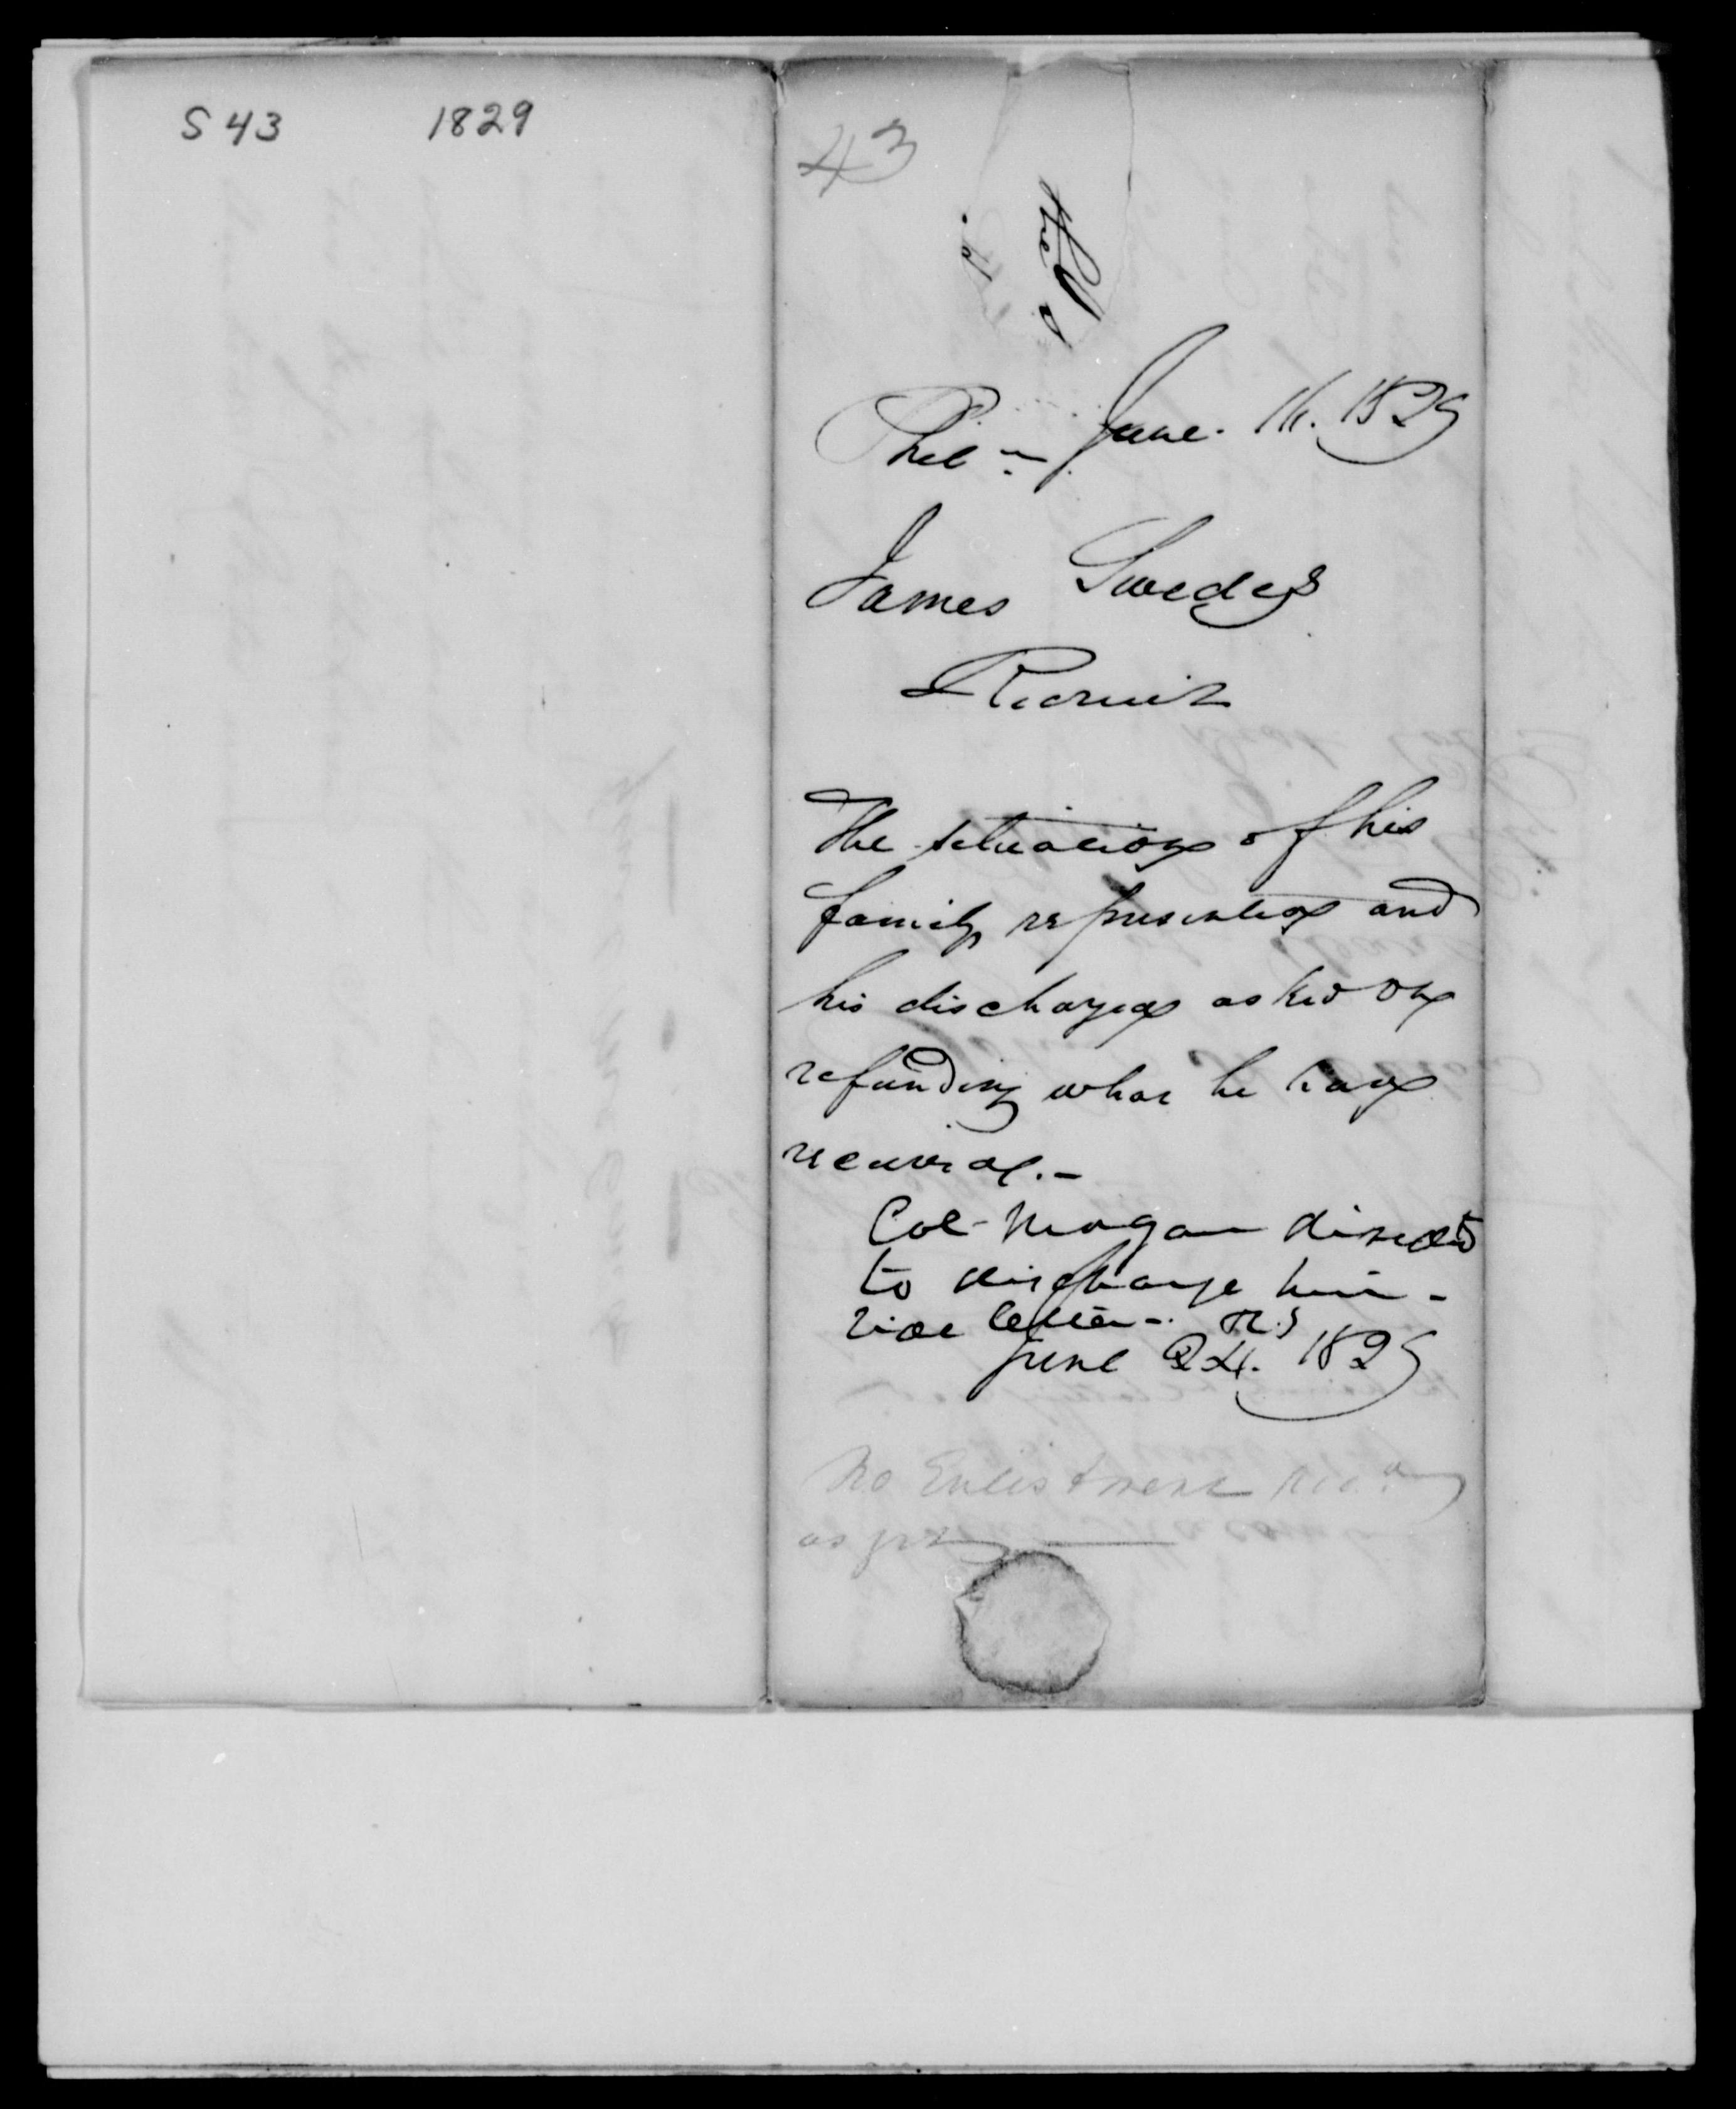 Swedes, James - Pennsylvania - 1829 - File No. S43